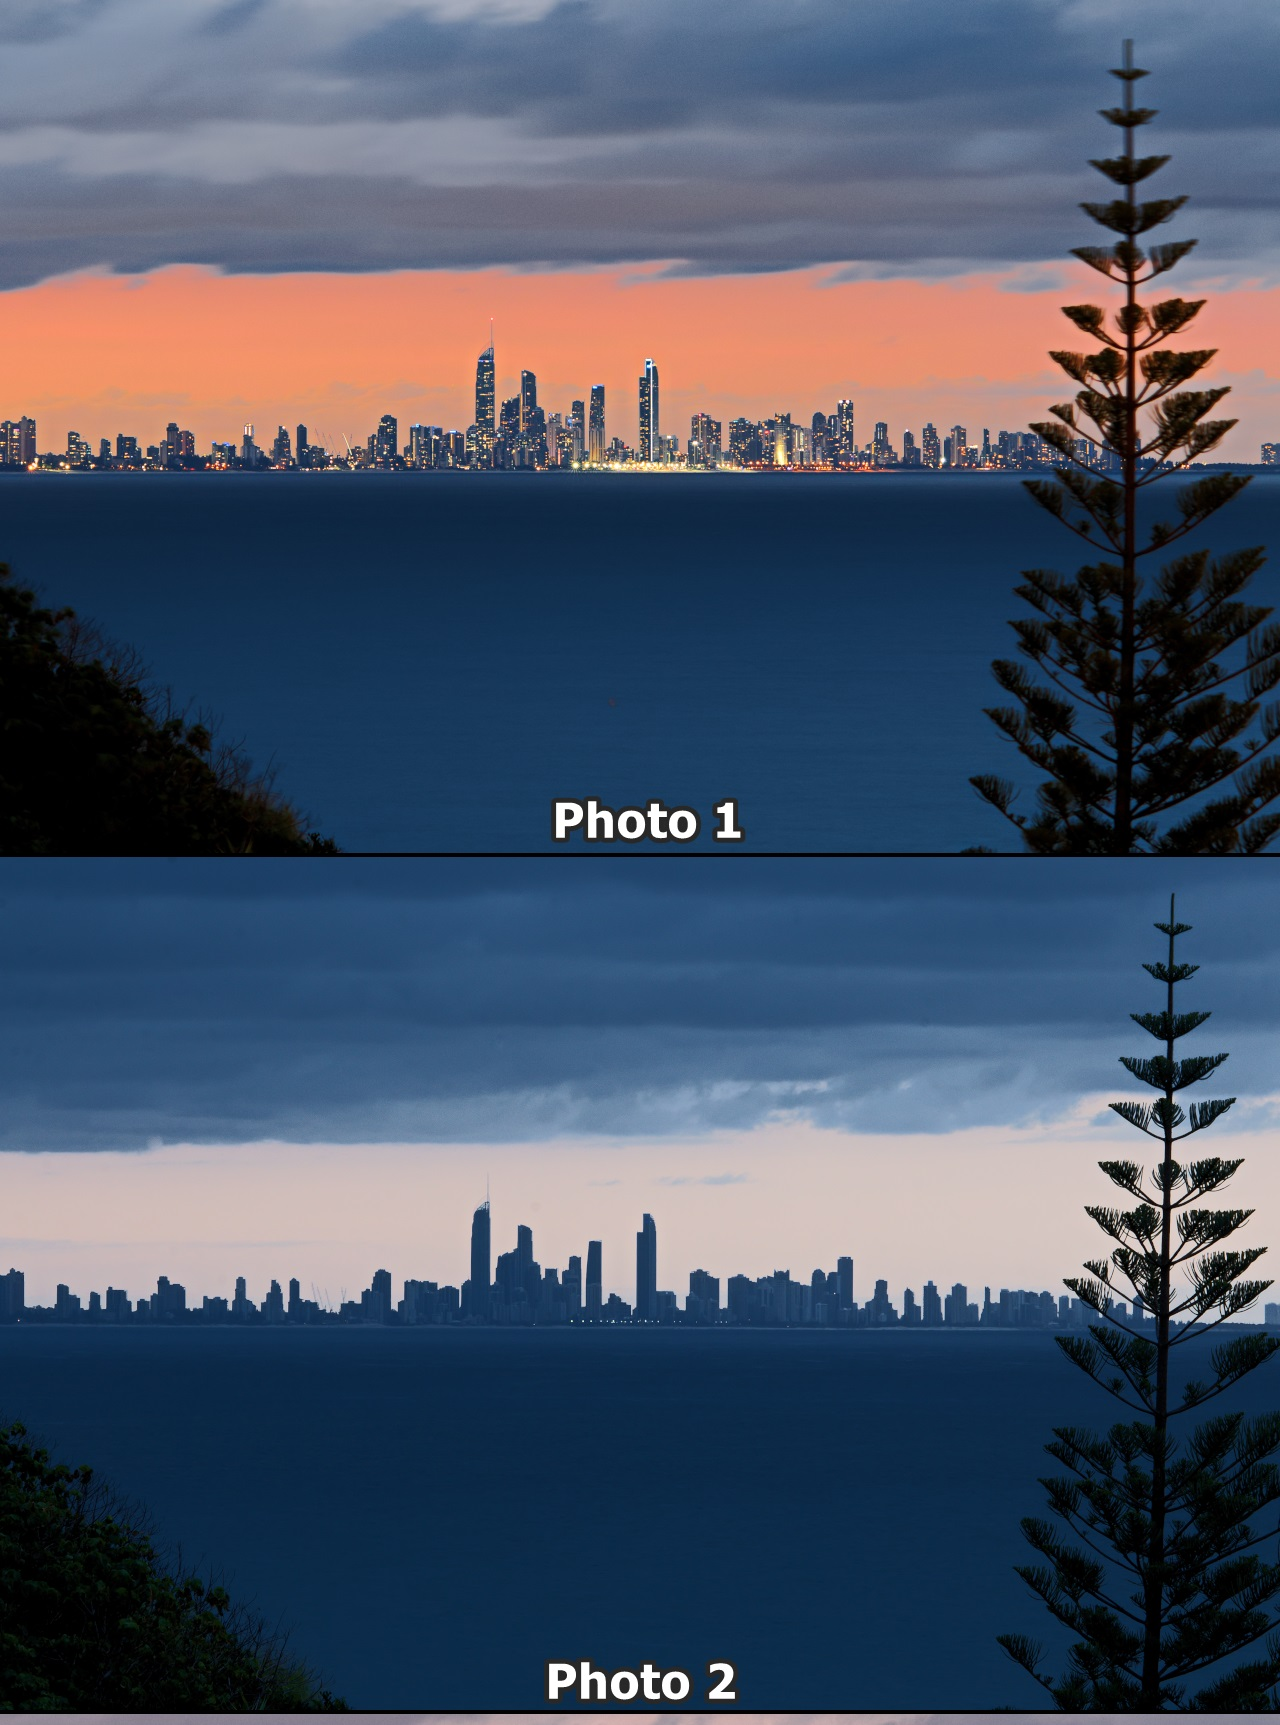 Same Photo Different Light Conditions 3_4